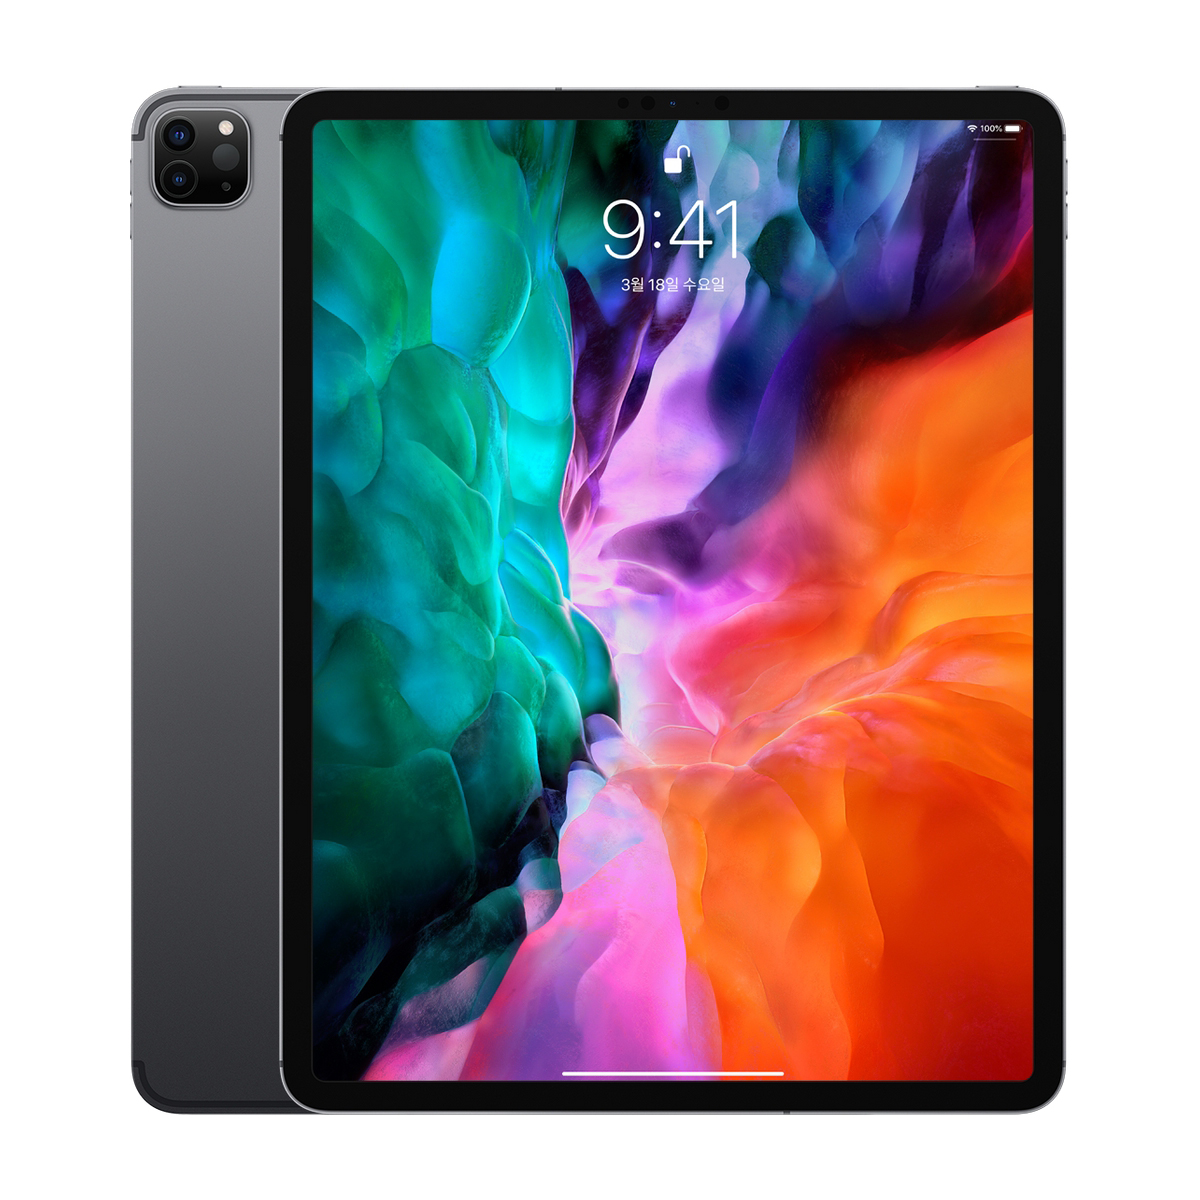 Apple 2020년 iPad Pro 12.9 4세대, Wi-Fi+Cellular, 512GB, Space Gray